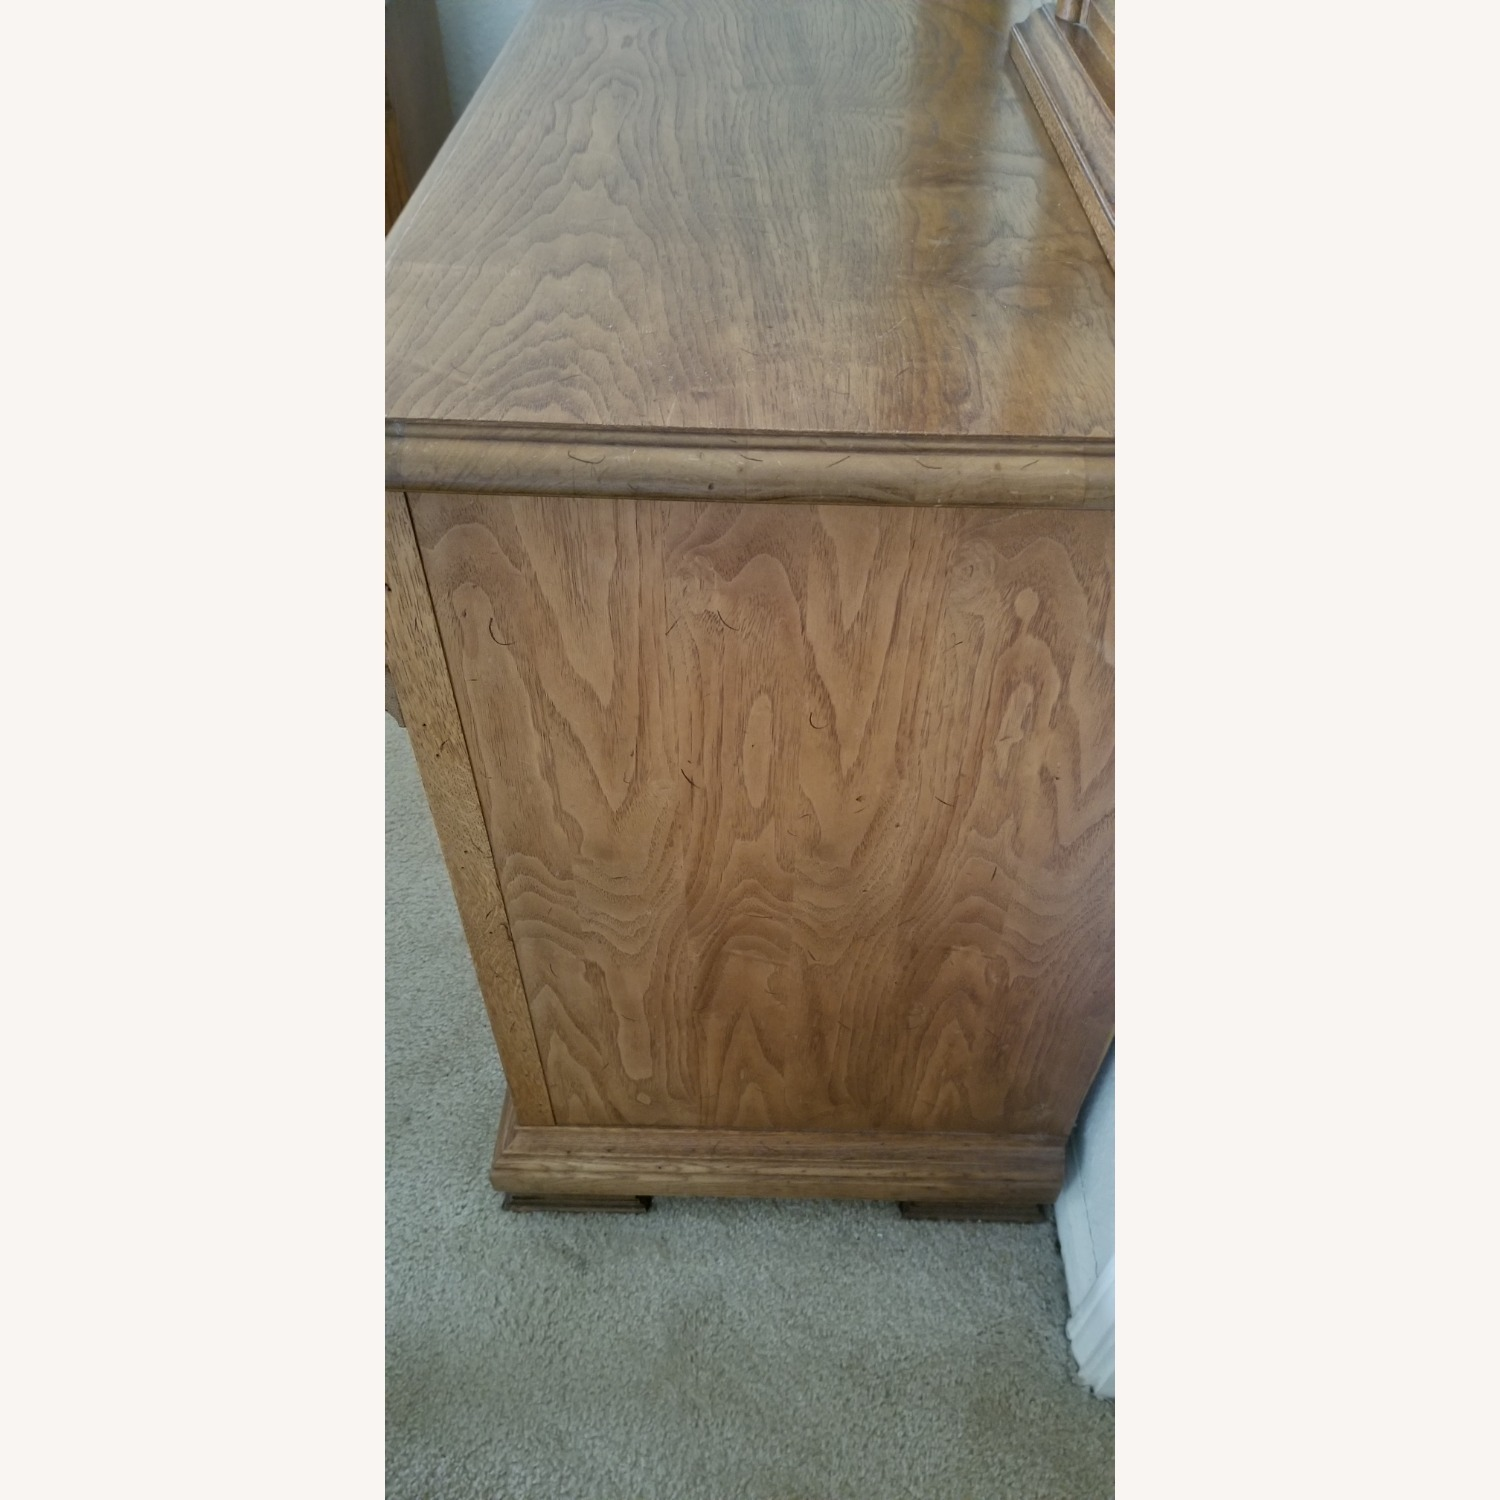 Vintage Drexel Dresser with two Large Mirrors - image-13